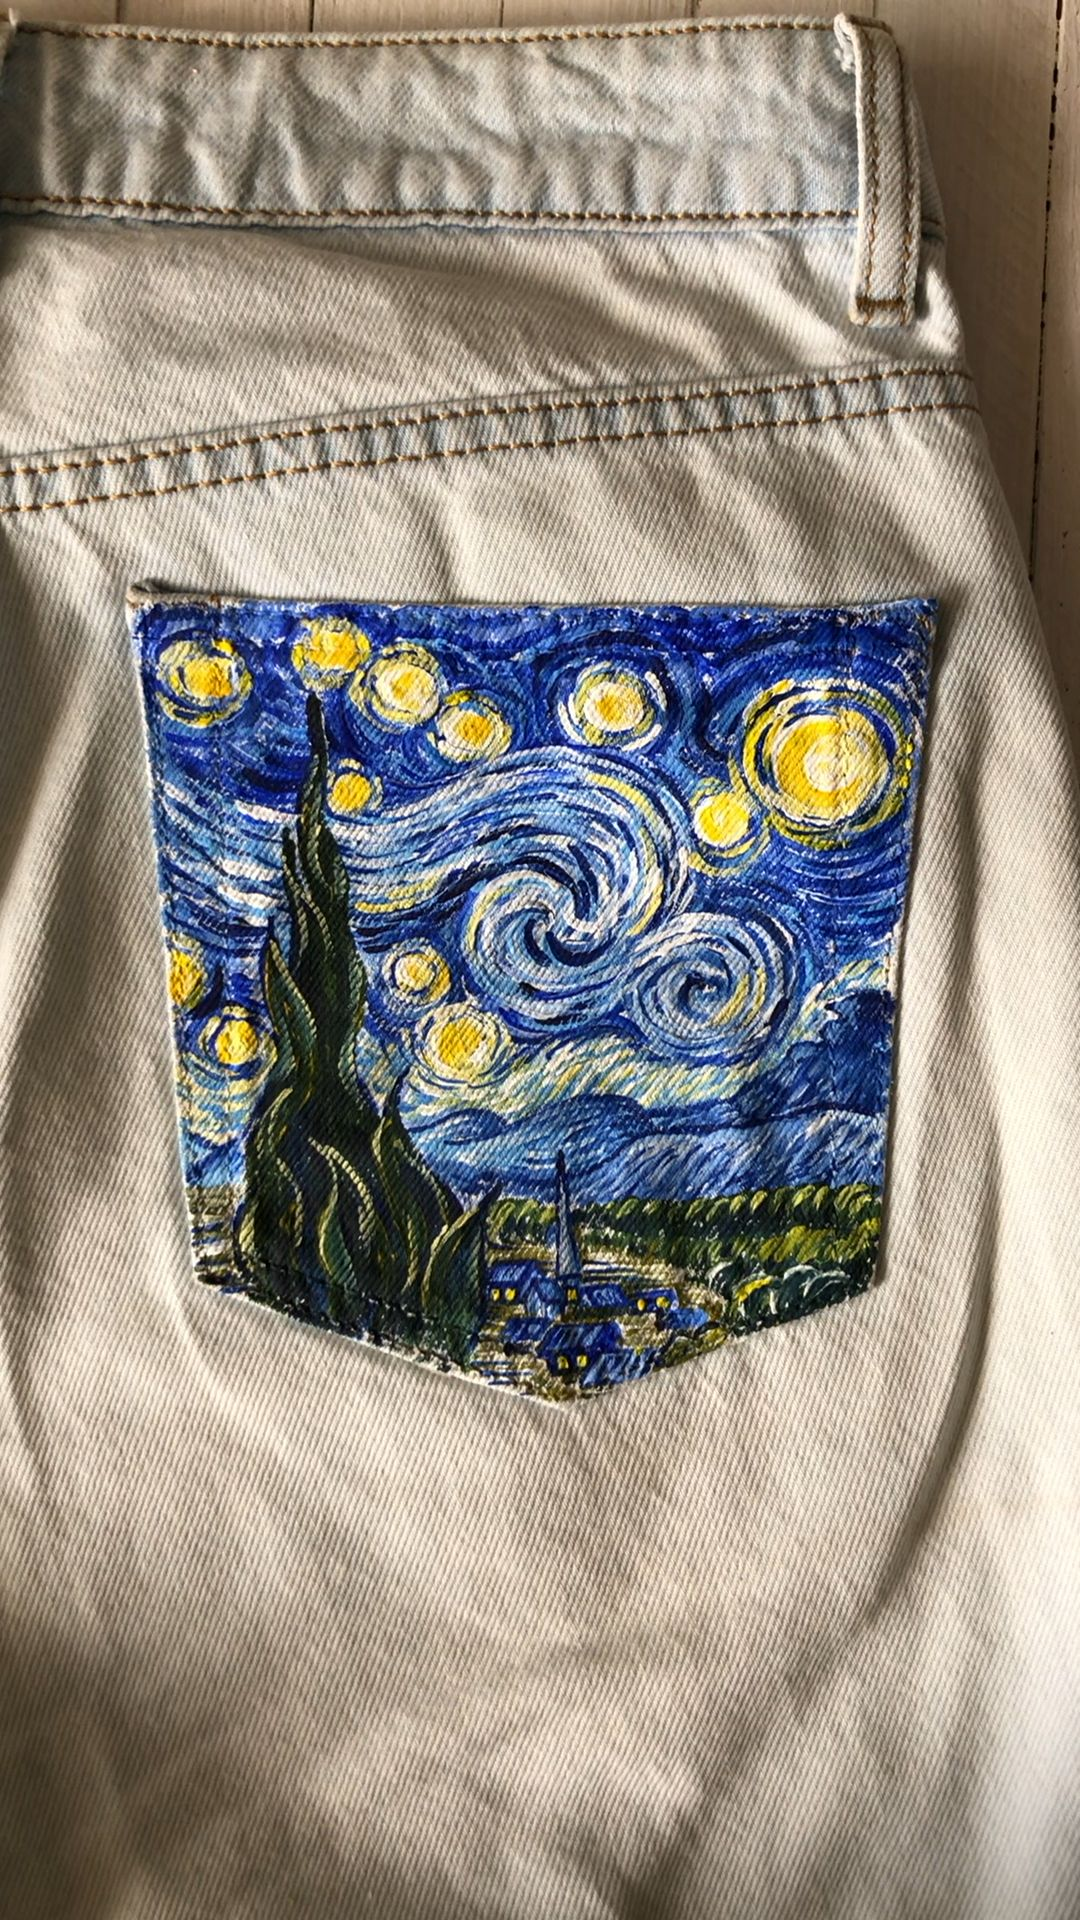 Hand painted jeans pocket Van Gogh Starry Night jean price | Etsy